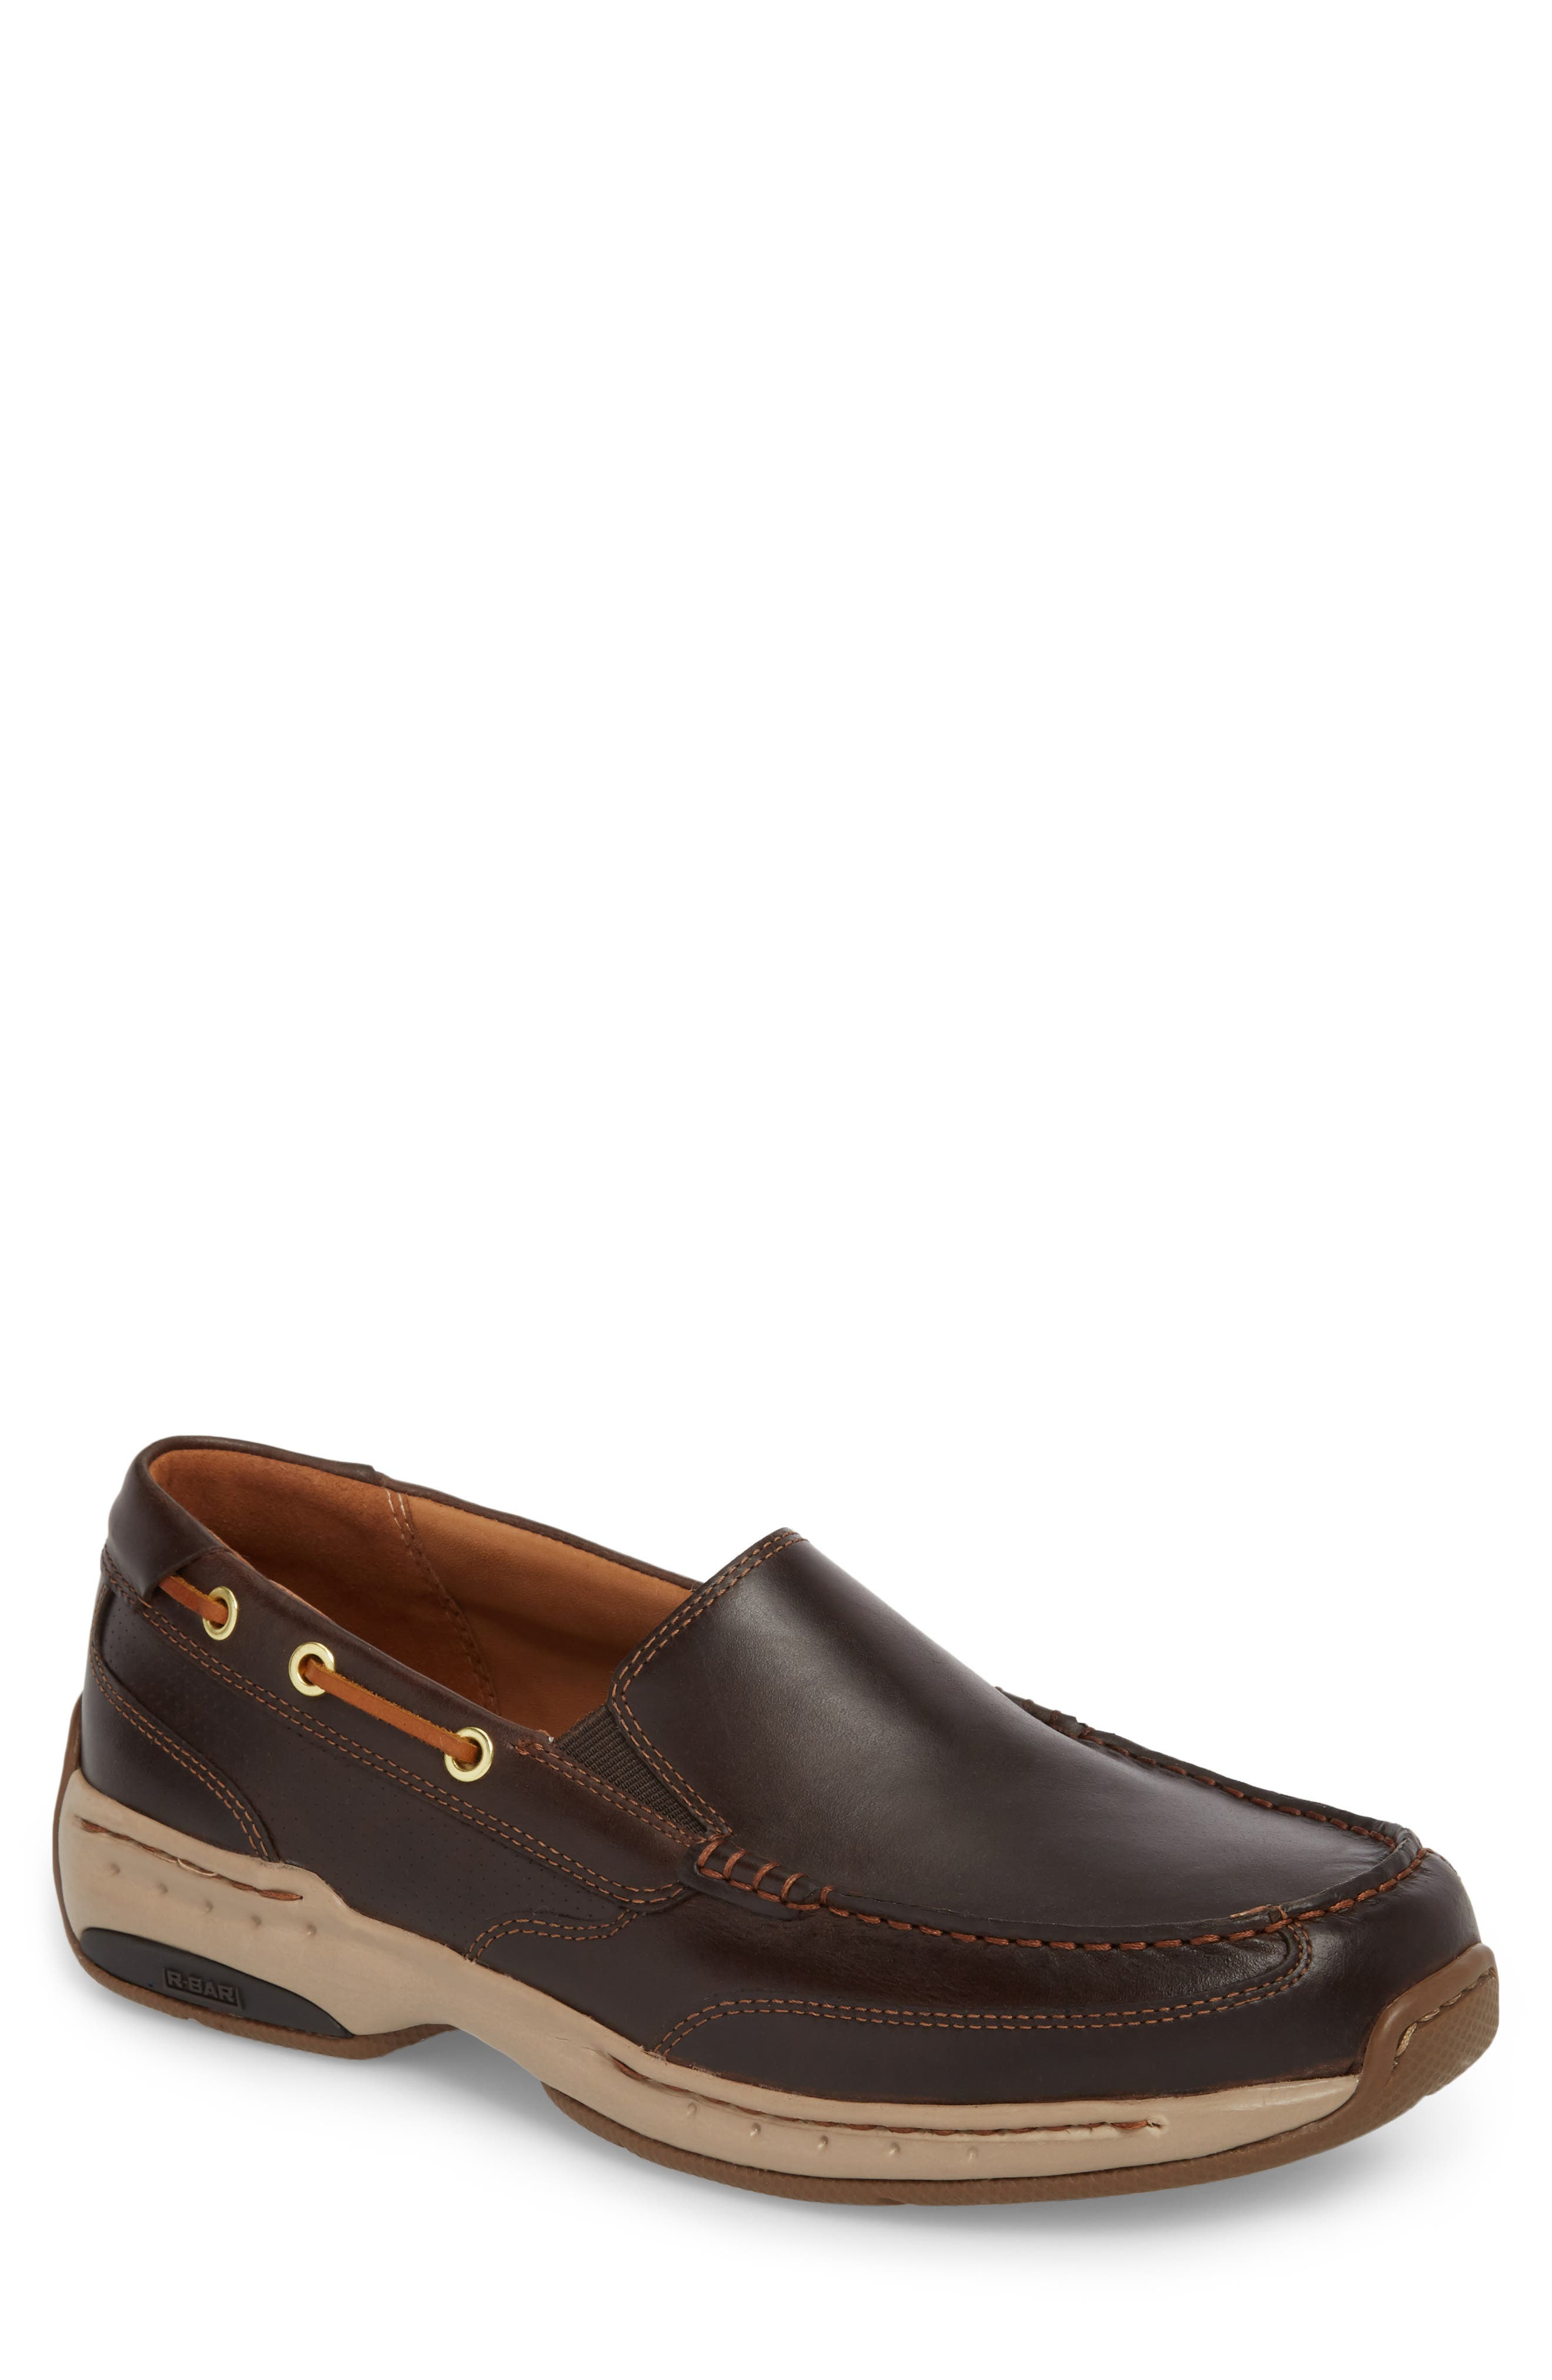 Waterford Water Resistant Slip-On,                         Main,                         color, Tan Leather